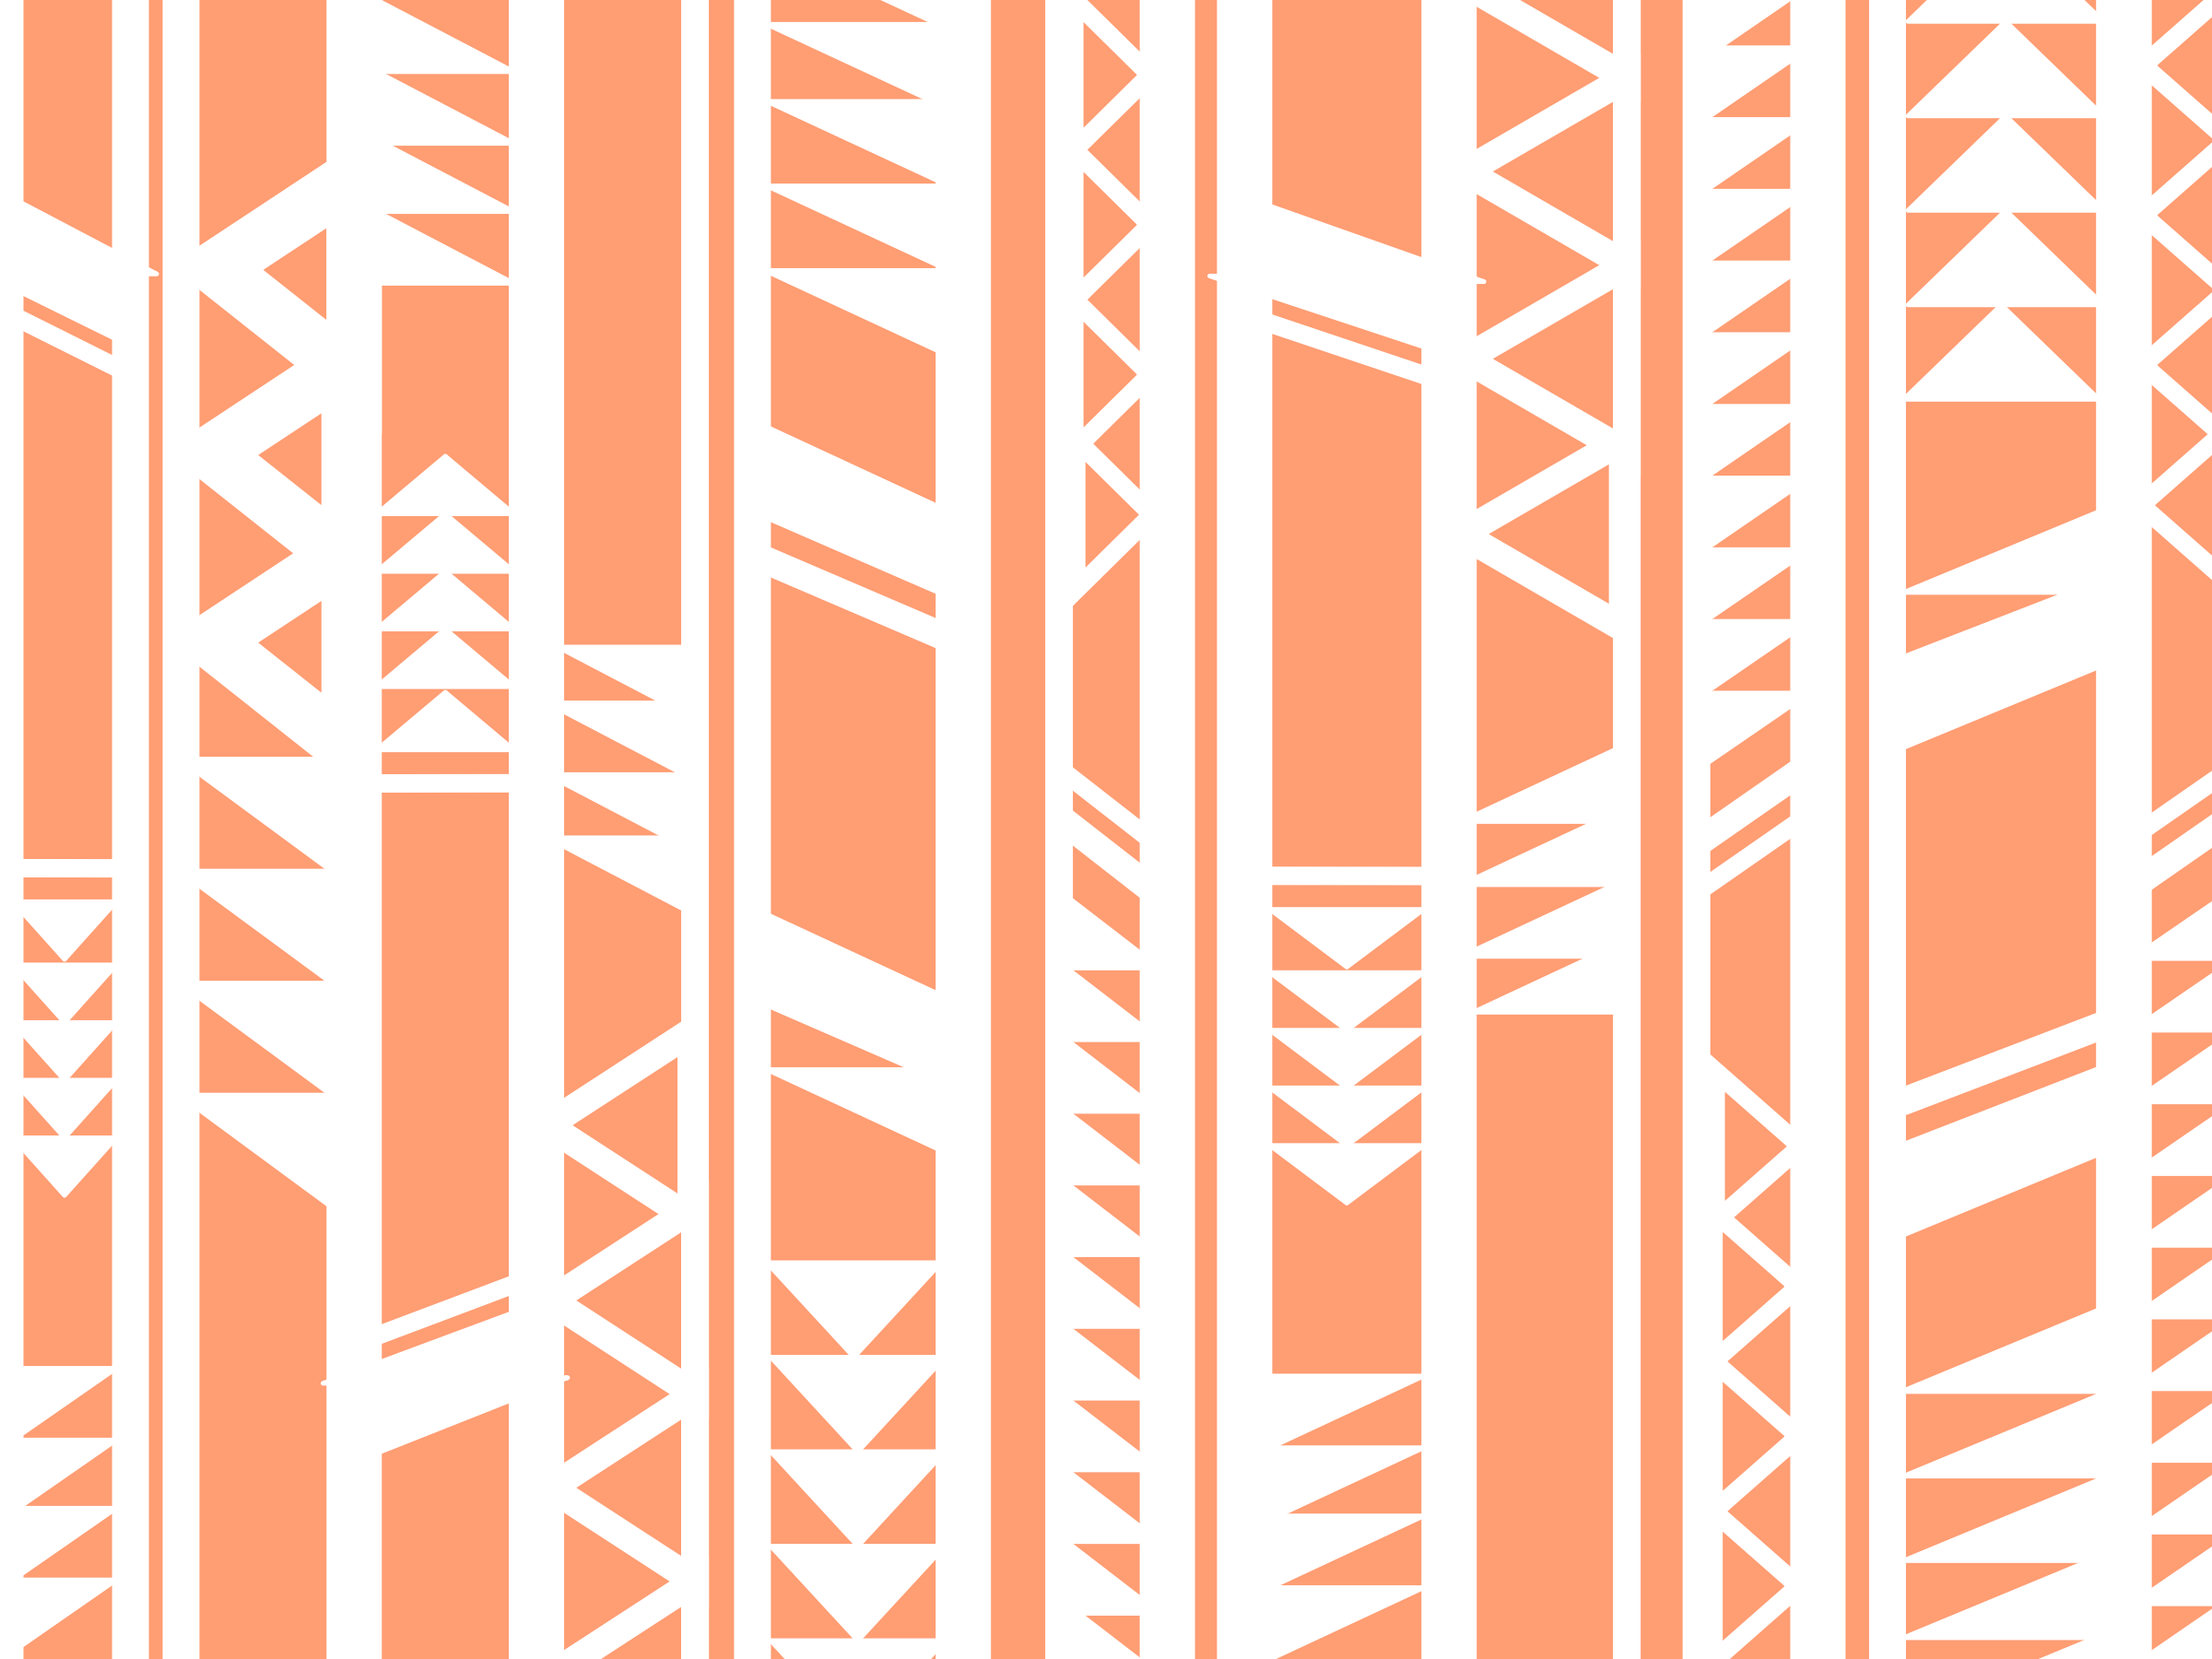 Tribal pattern pinterest patterns. Clipart cross patterned